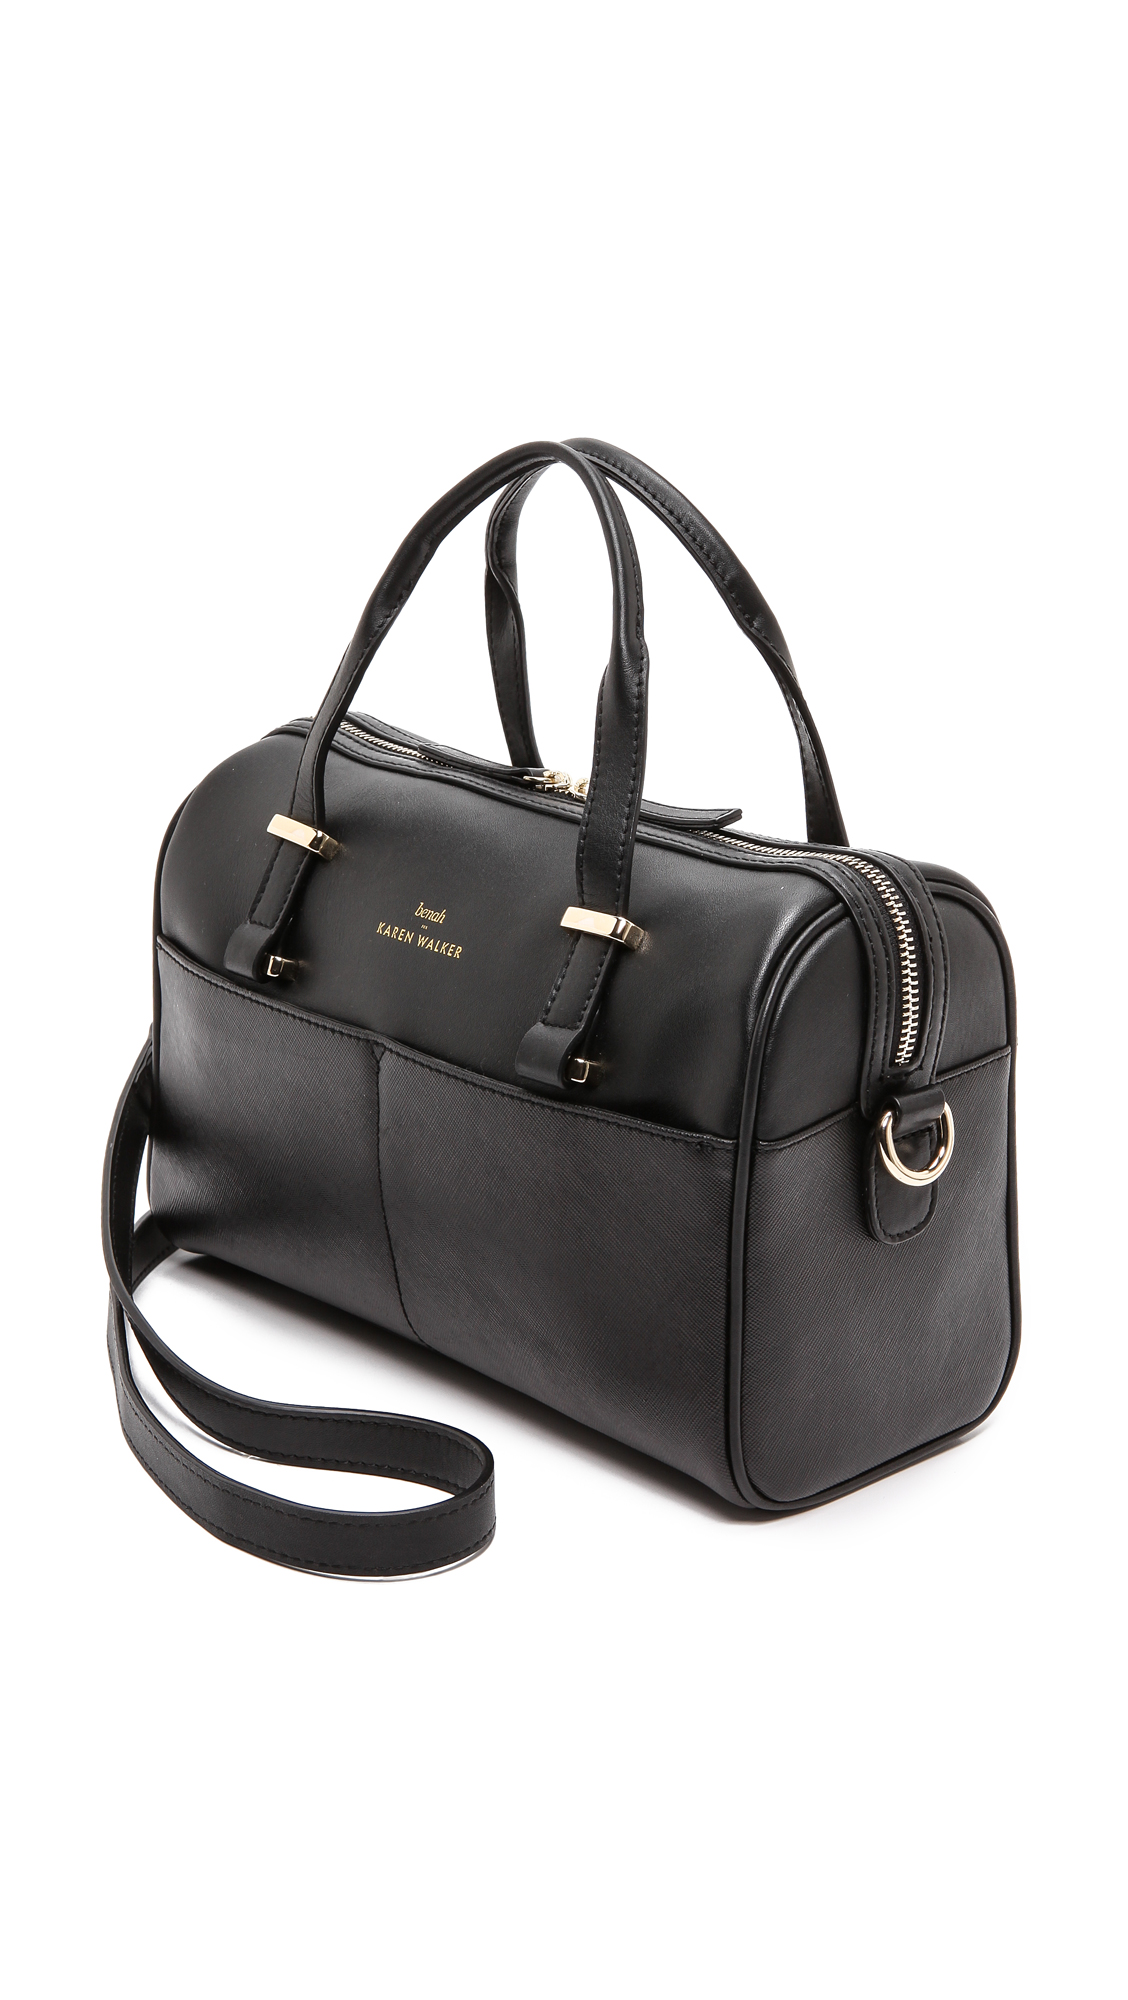 8e6a78edf3cf Karen Walker Andie Mini Duffle Bag